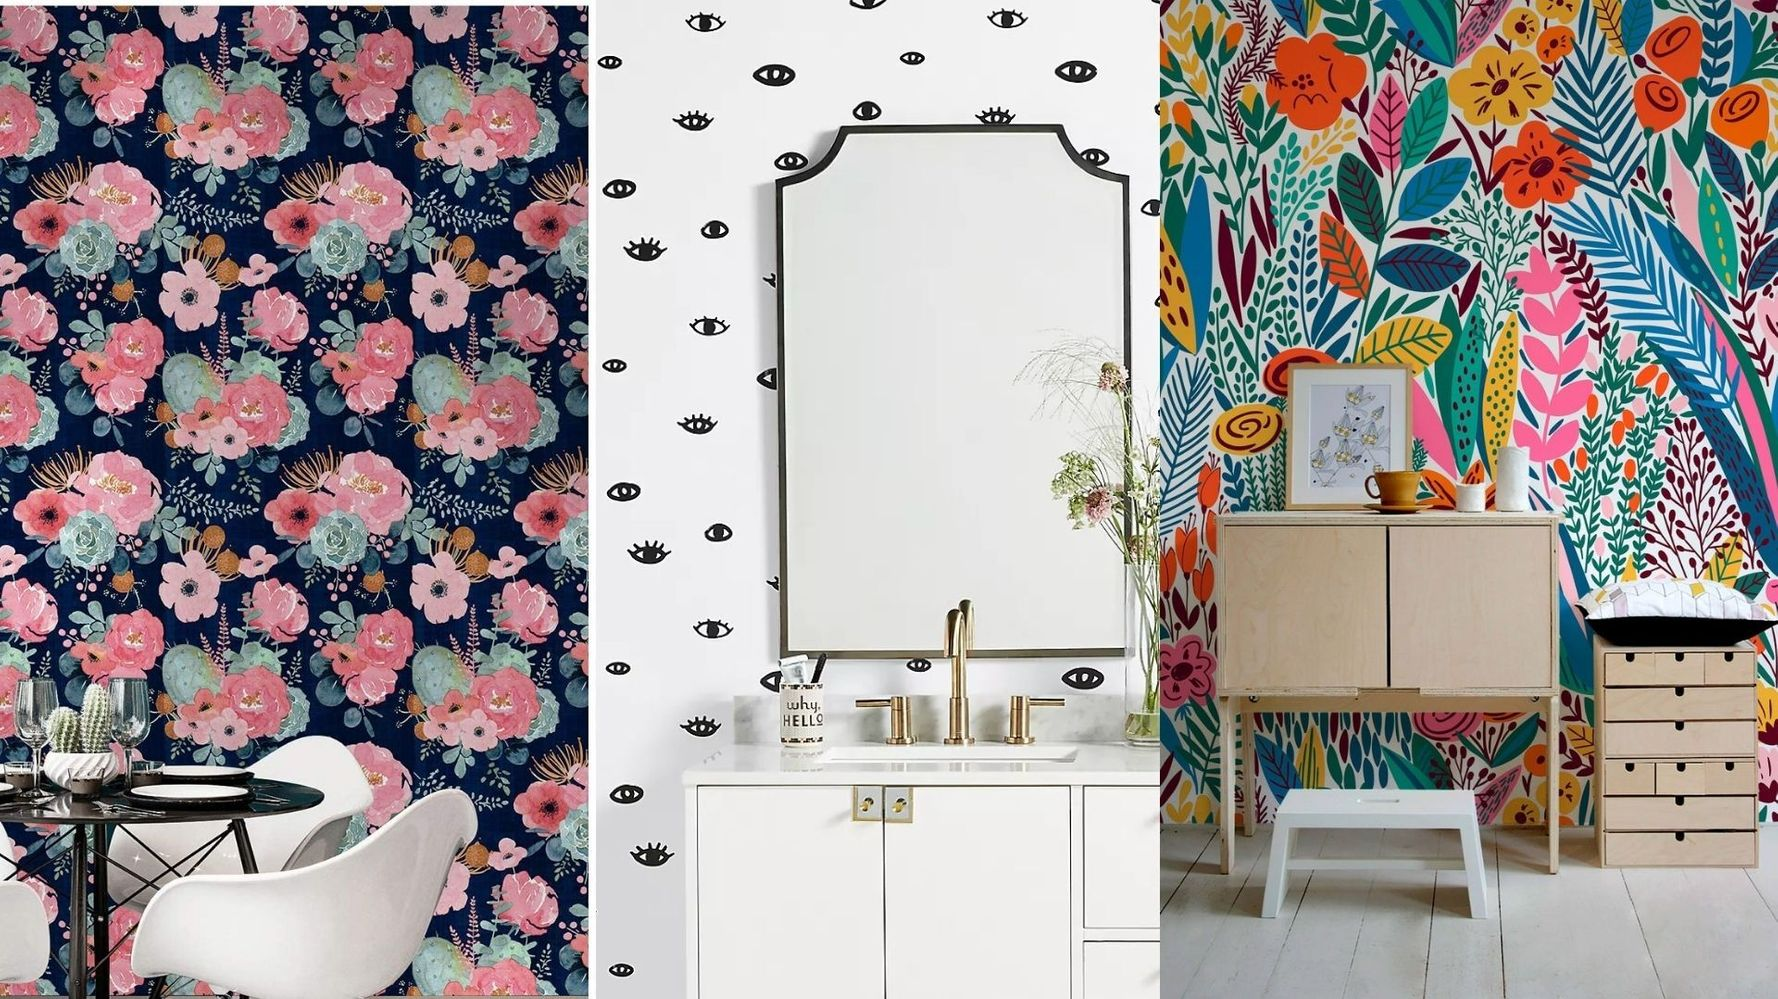 27 Whimsical Peel-And-Stick Wallpapers To Brighten Up Your Home